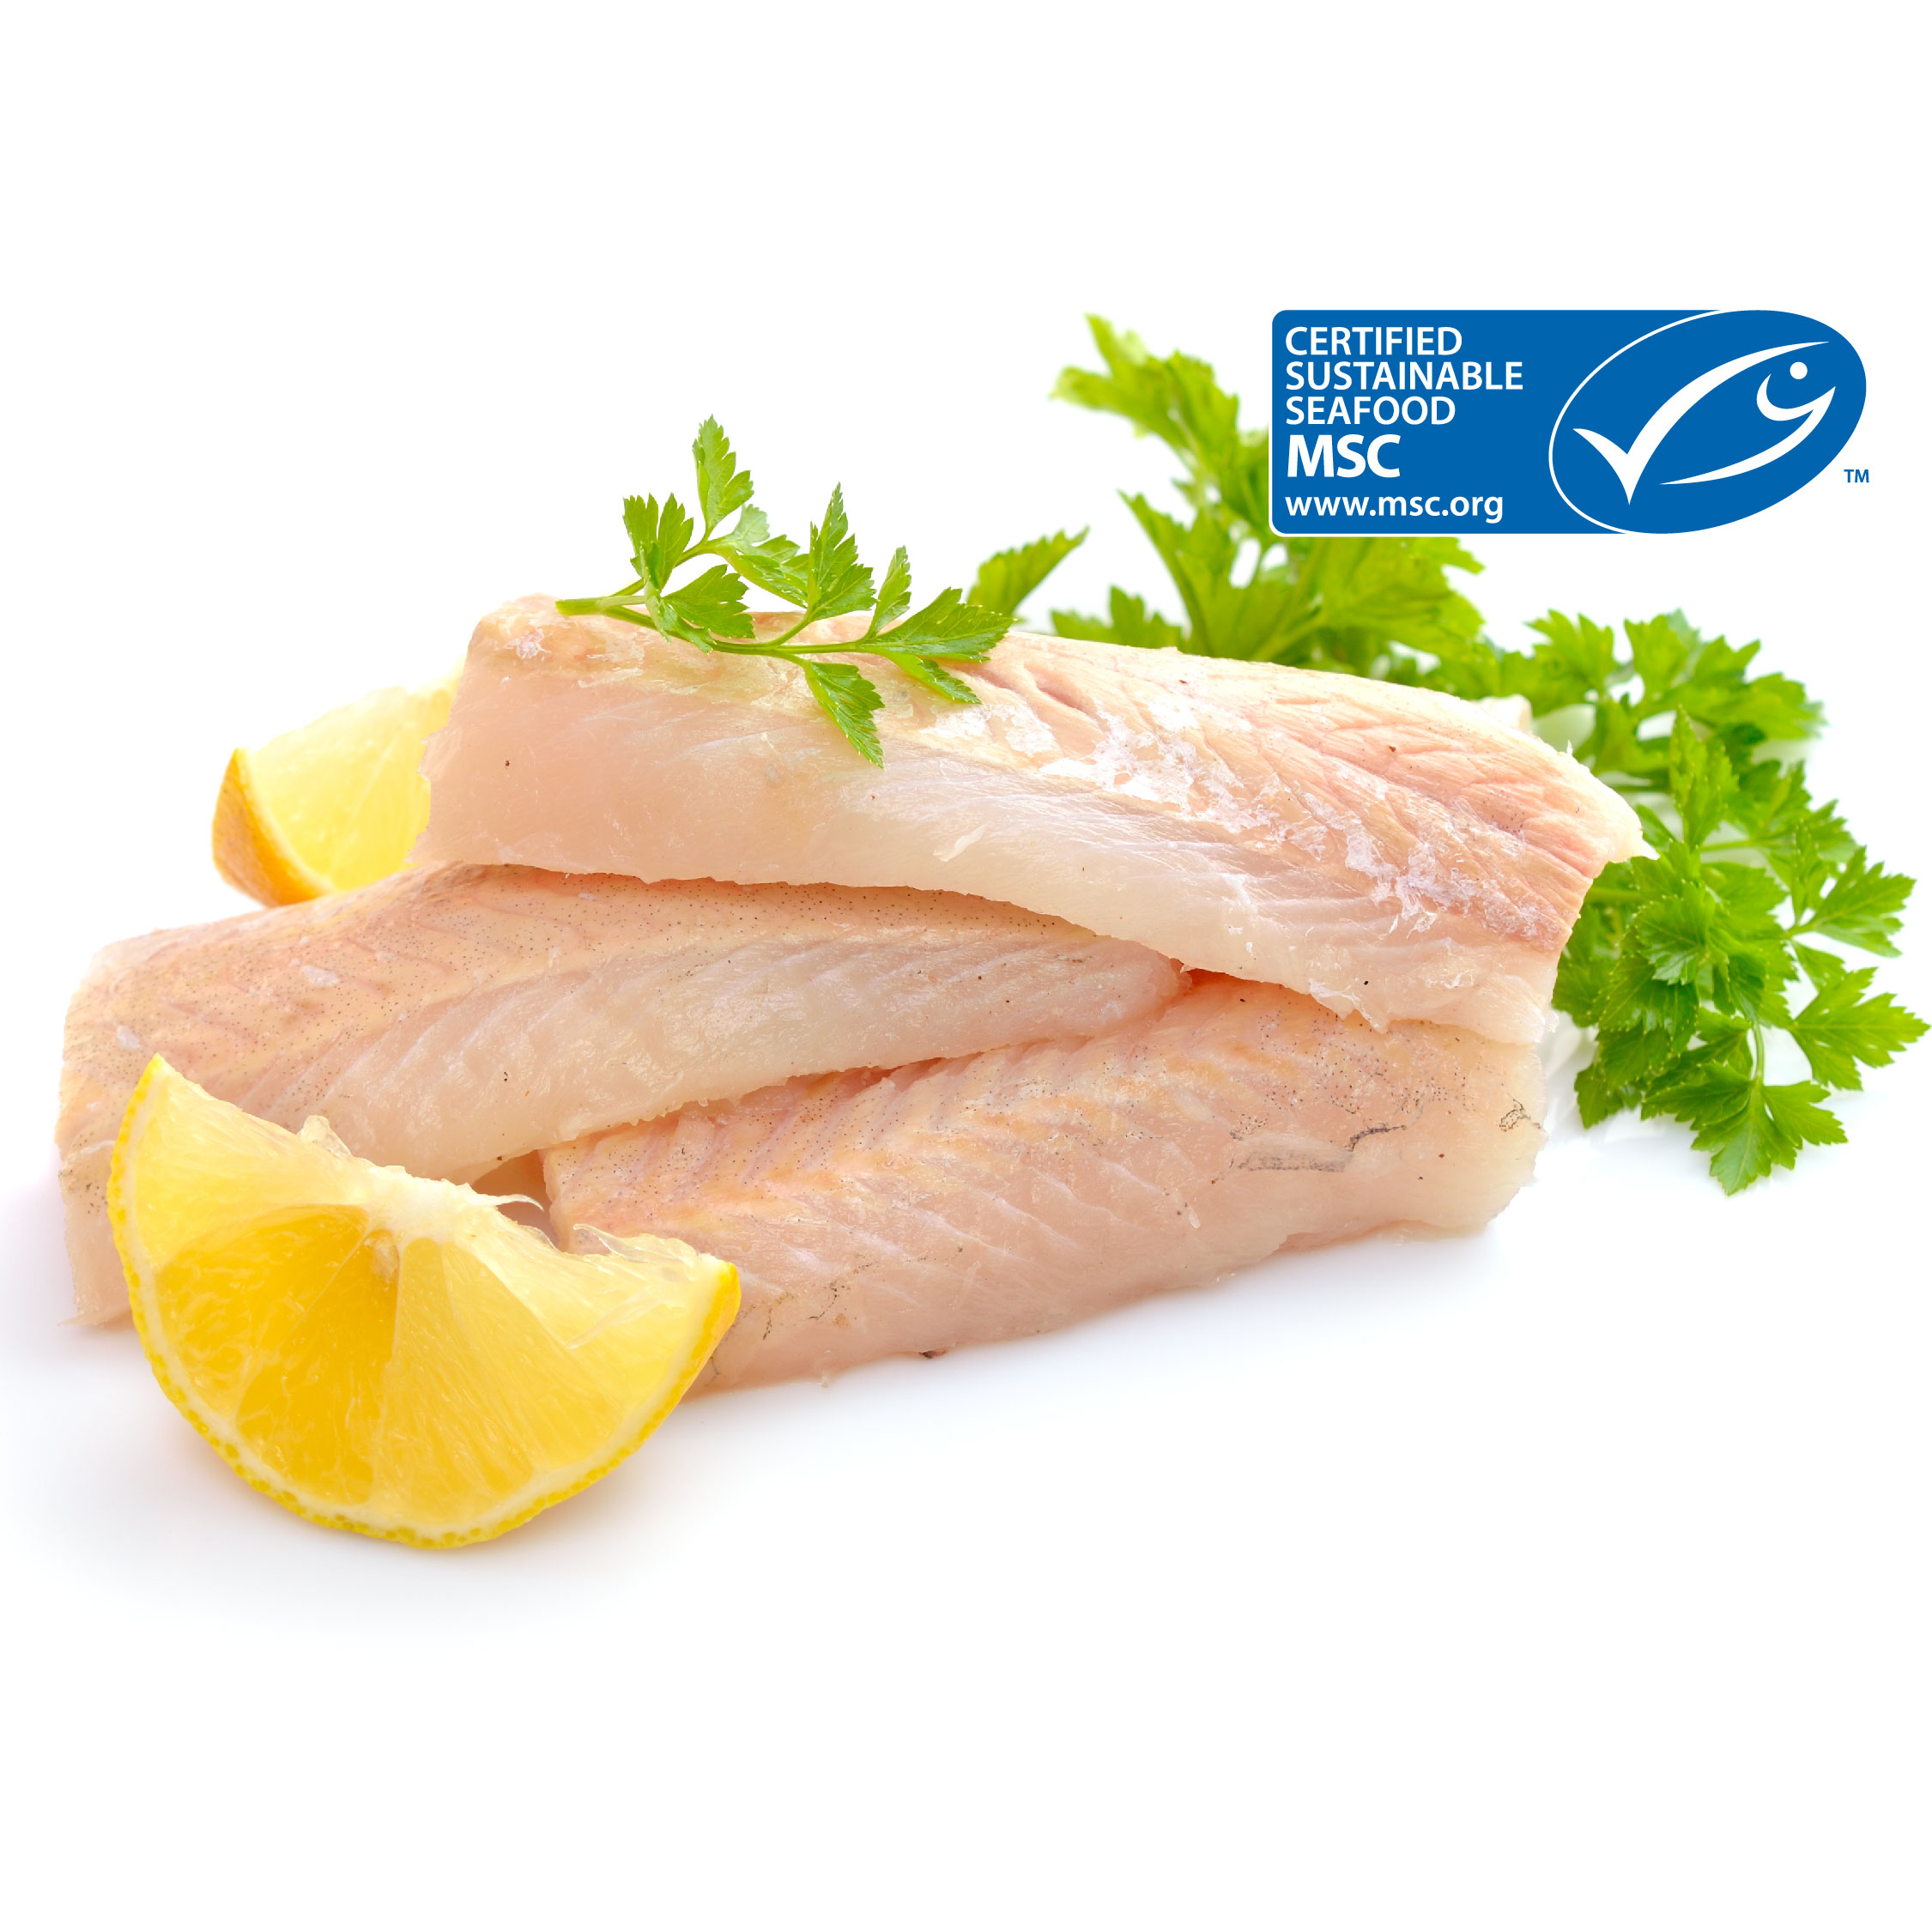 Have you seen our new sustainable Hake range?